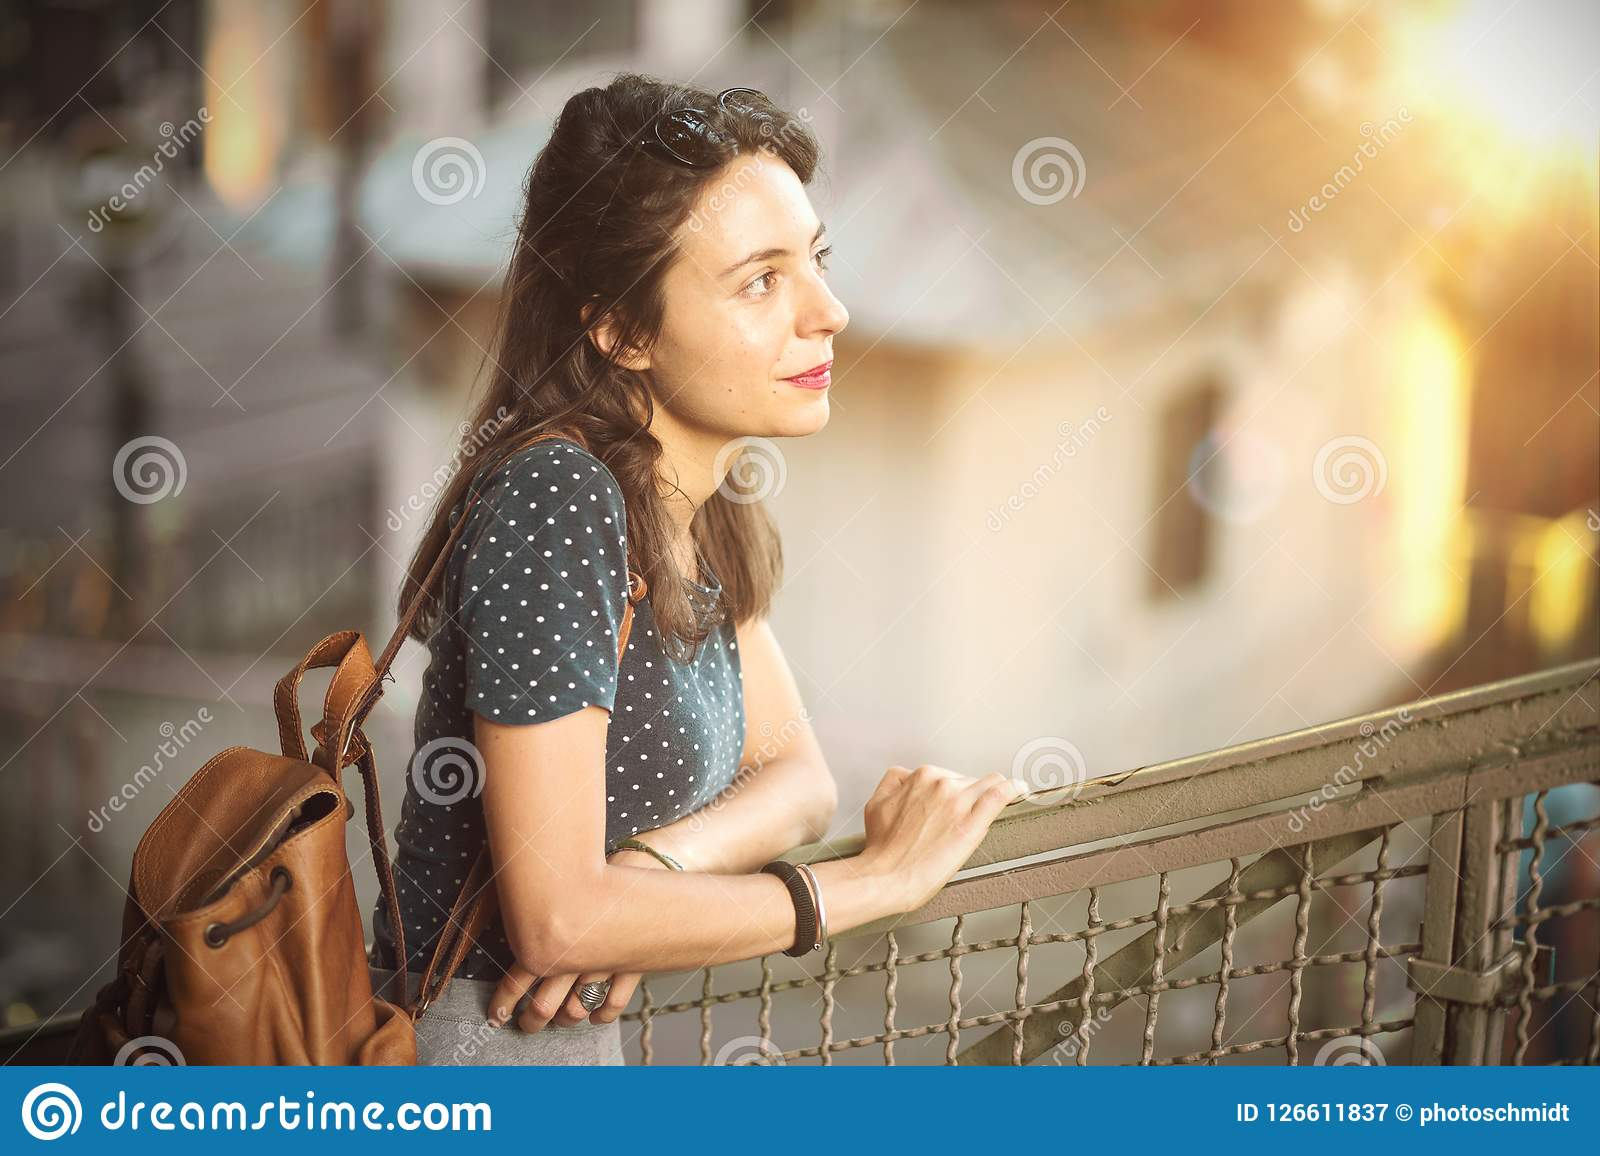 Contemplative young woman leaning on a banister